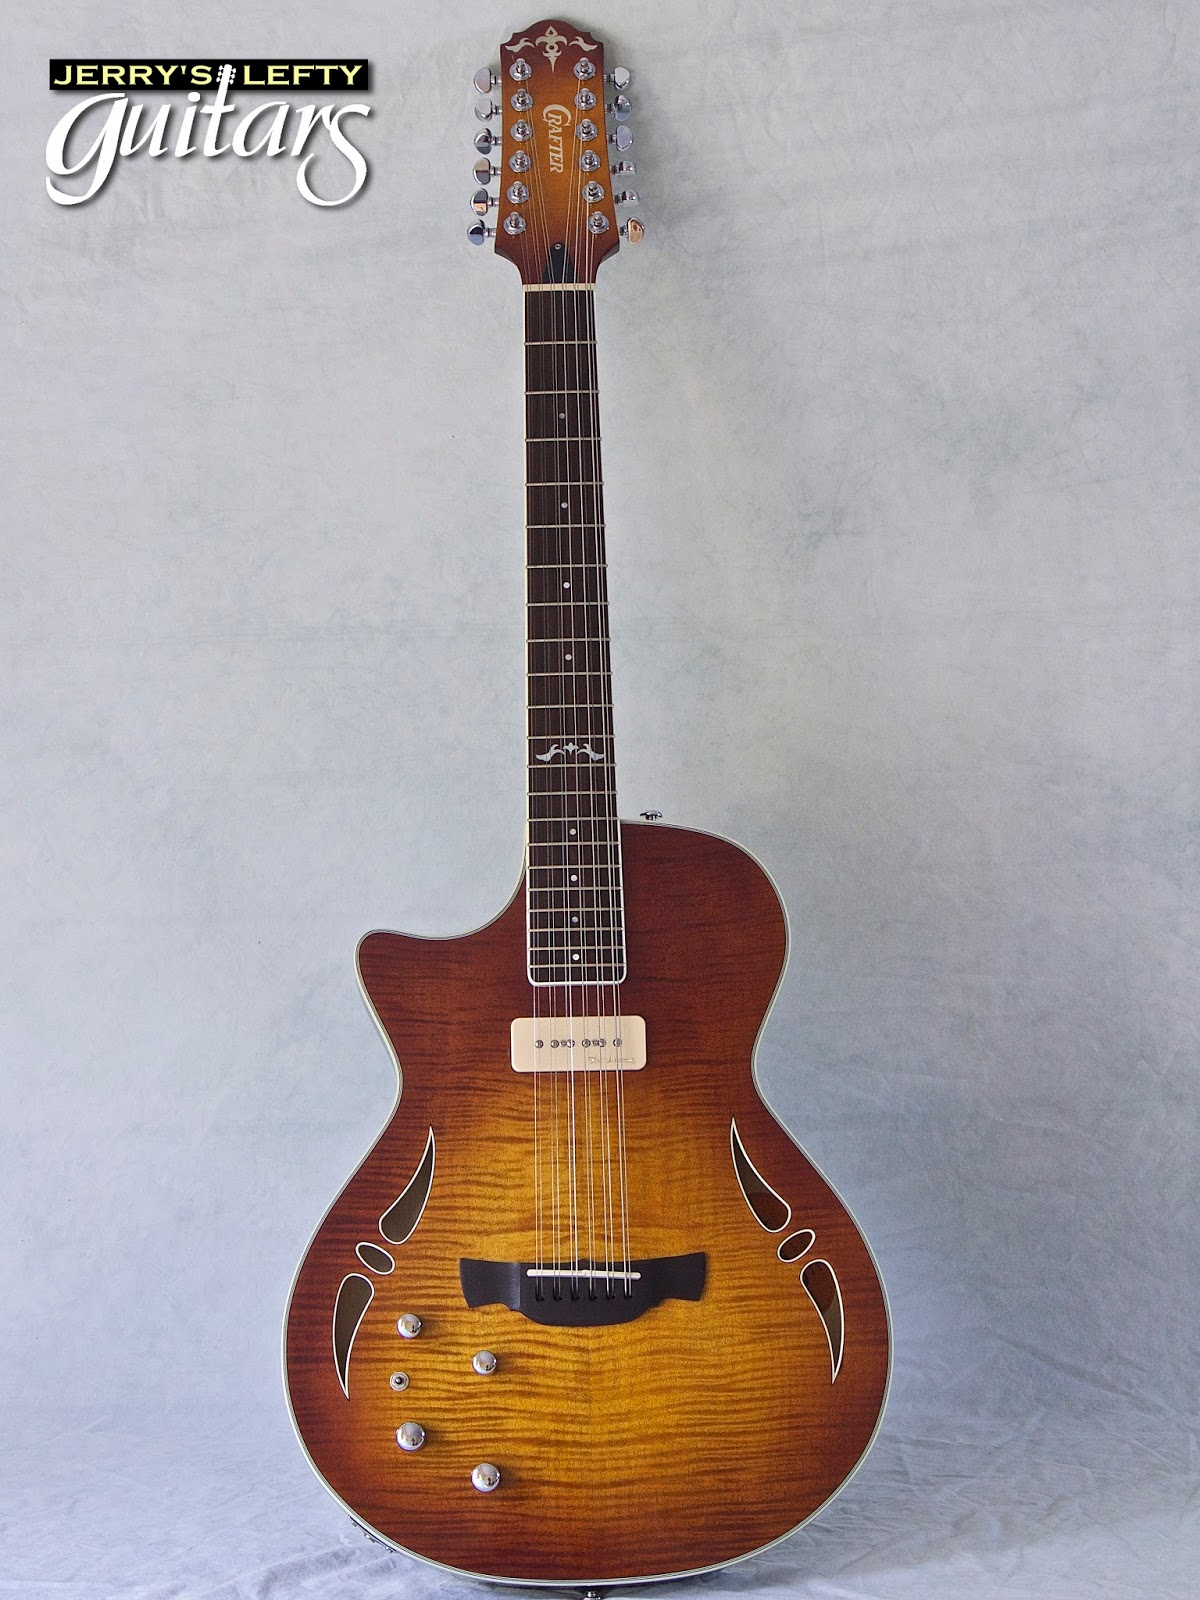 jerry 39 s lefty guitars newest guitar arrivals updated weekly crafter sa 12 used 12 string left. Black Bedroom Furniture Sets. Home Design Ideas